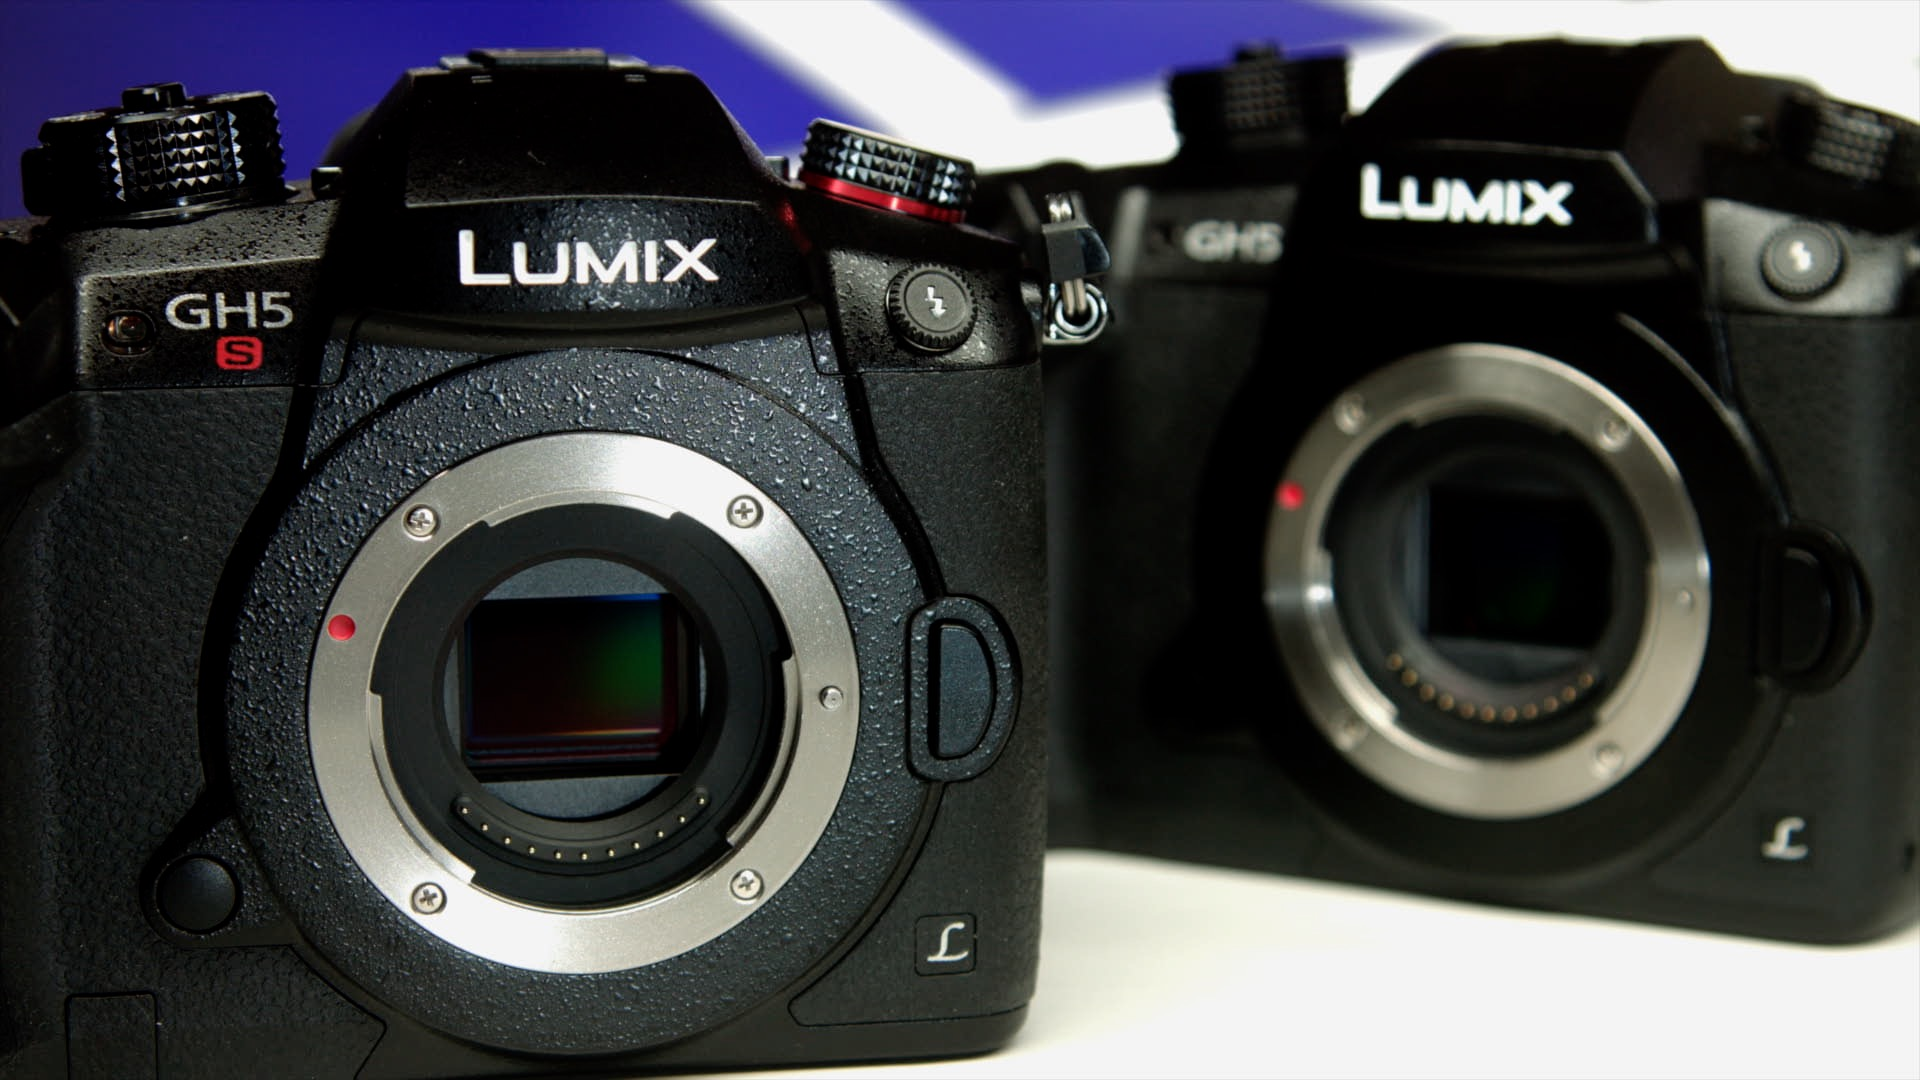 Panasonic firmware 2 3 adds improved auto focus and more for GH5